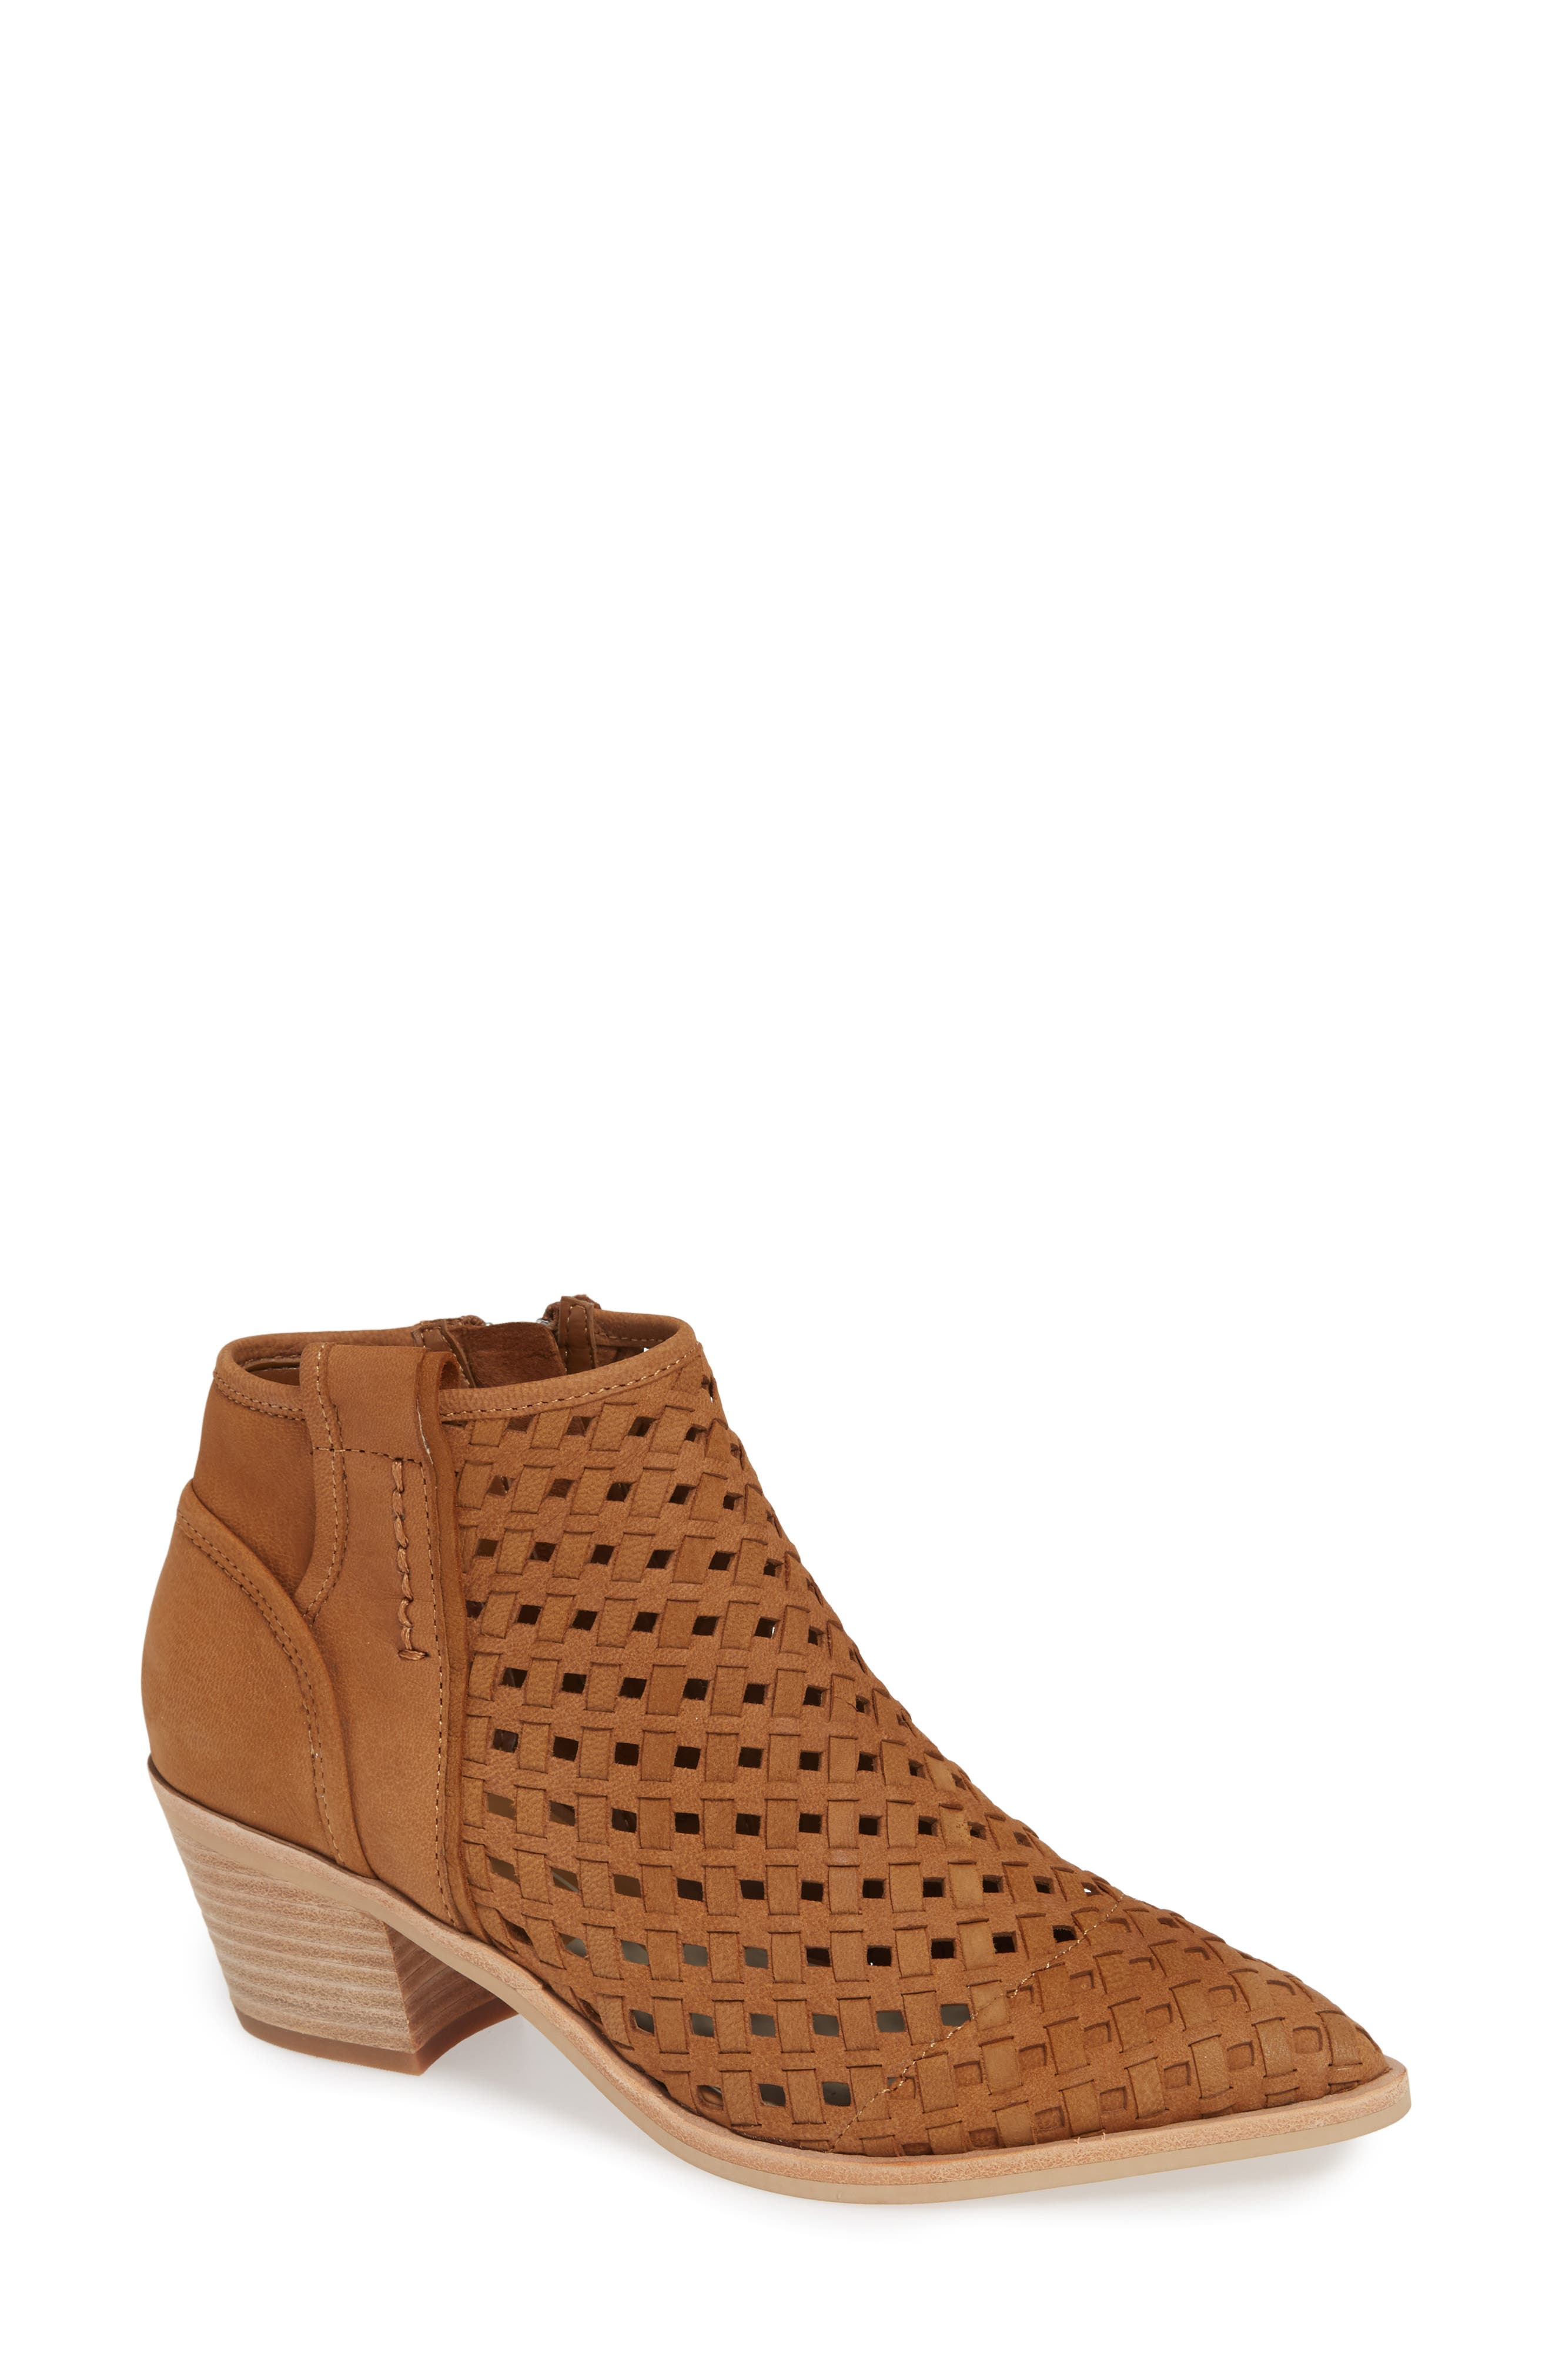 Dolce Vita Spence Woven Bootie, Brown